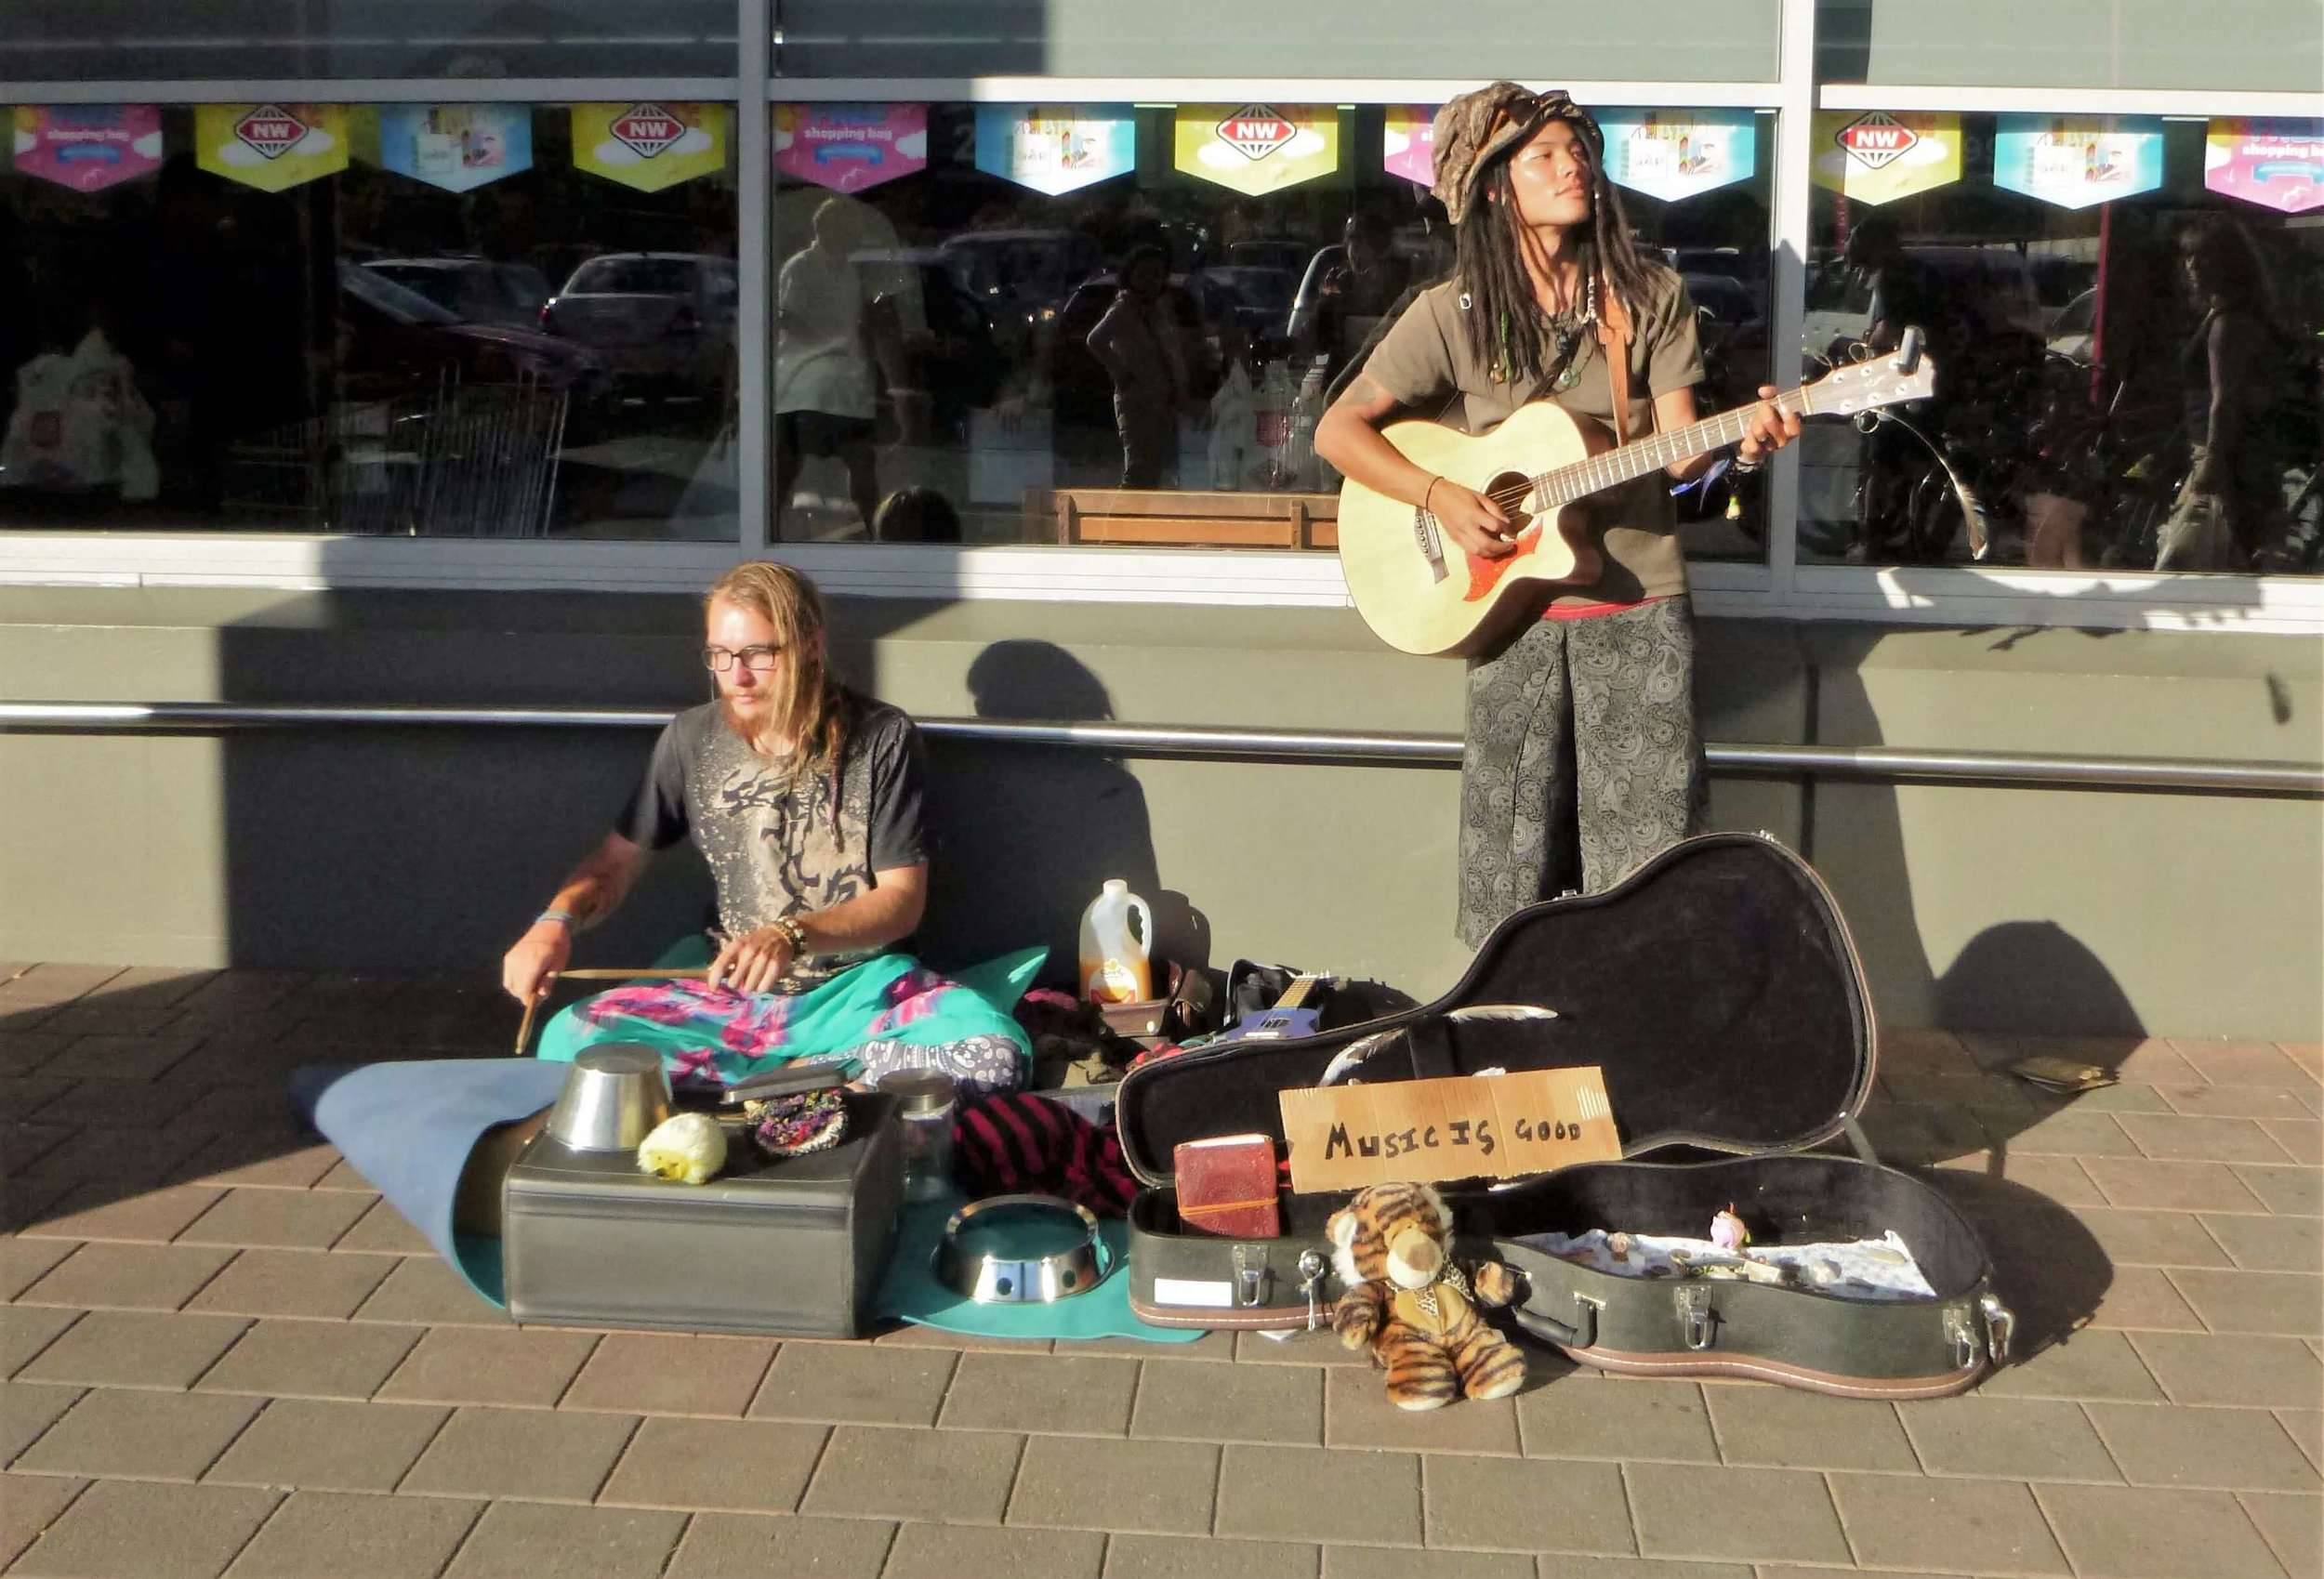 Our busking setup in Wanaka, New Zealand